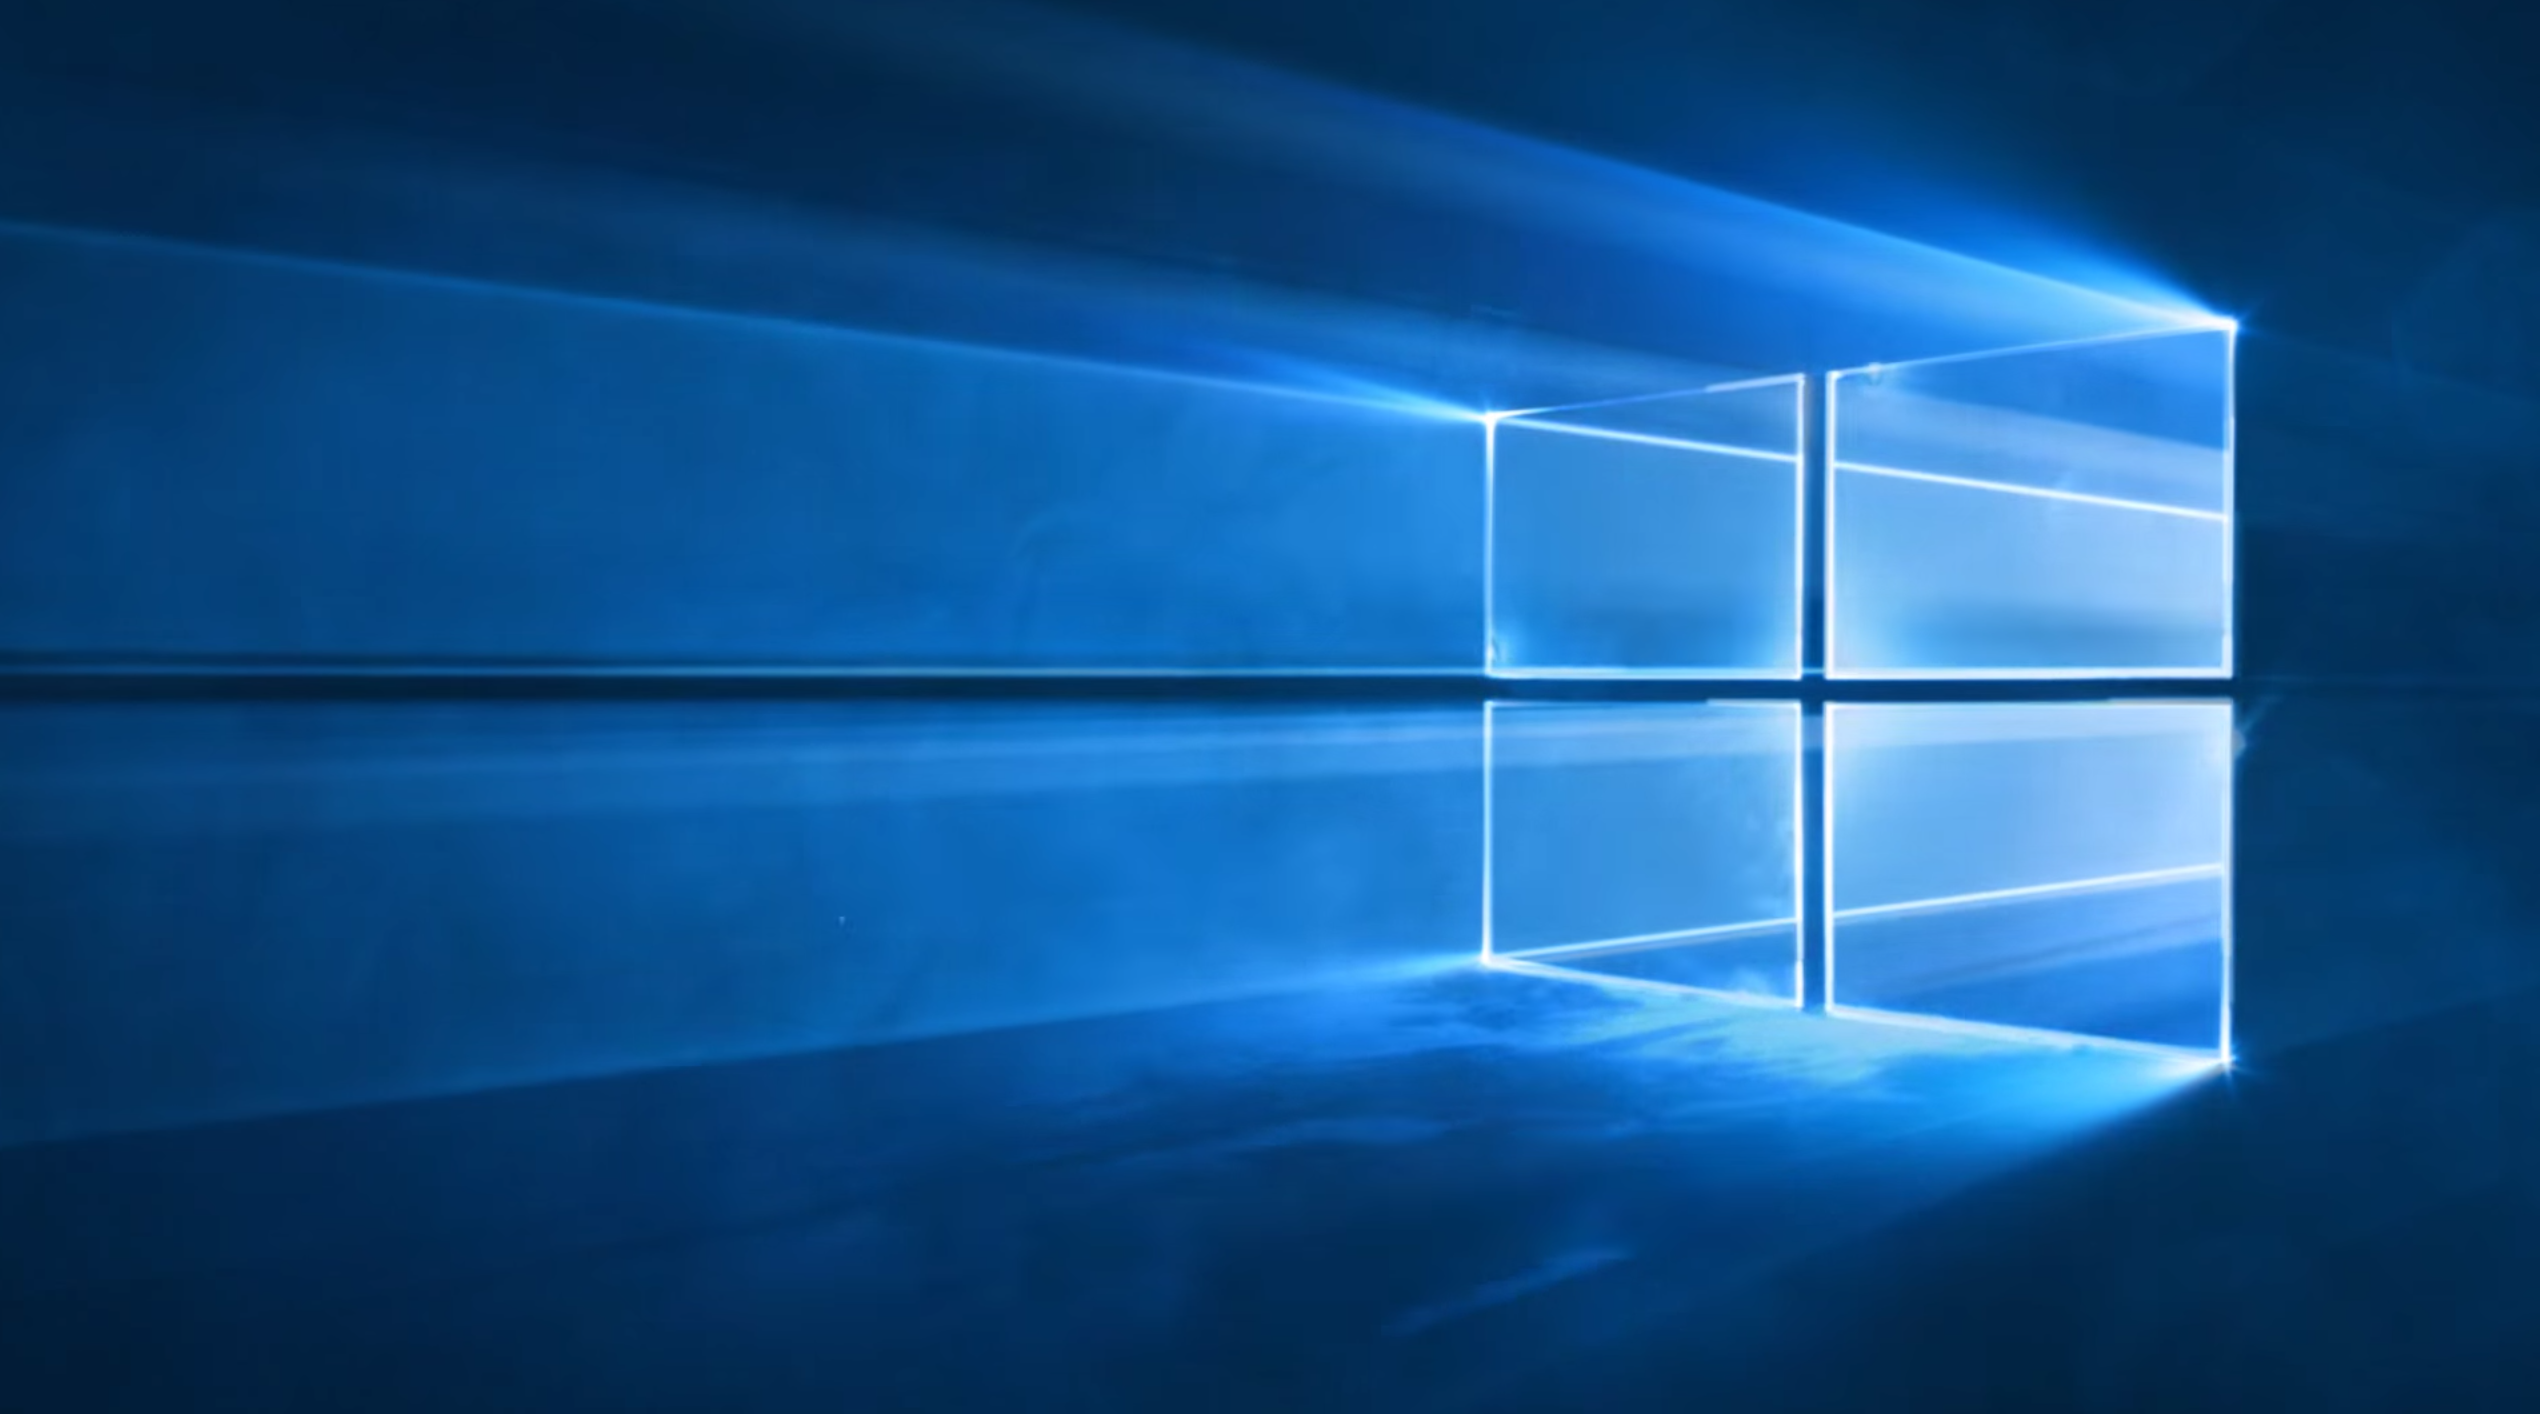 Free download What to expect as Microsoft unveils Surface